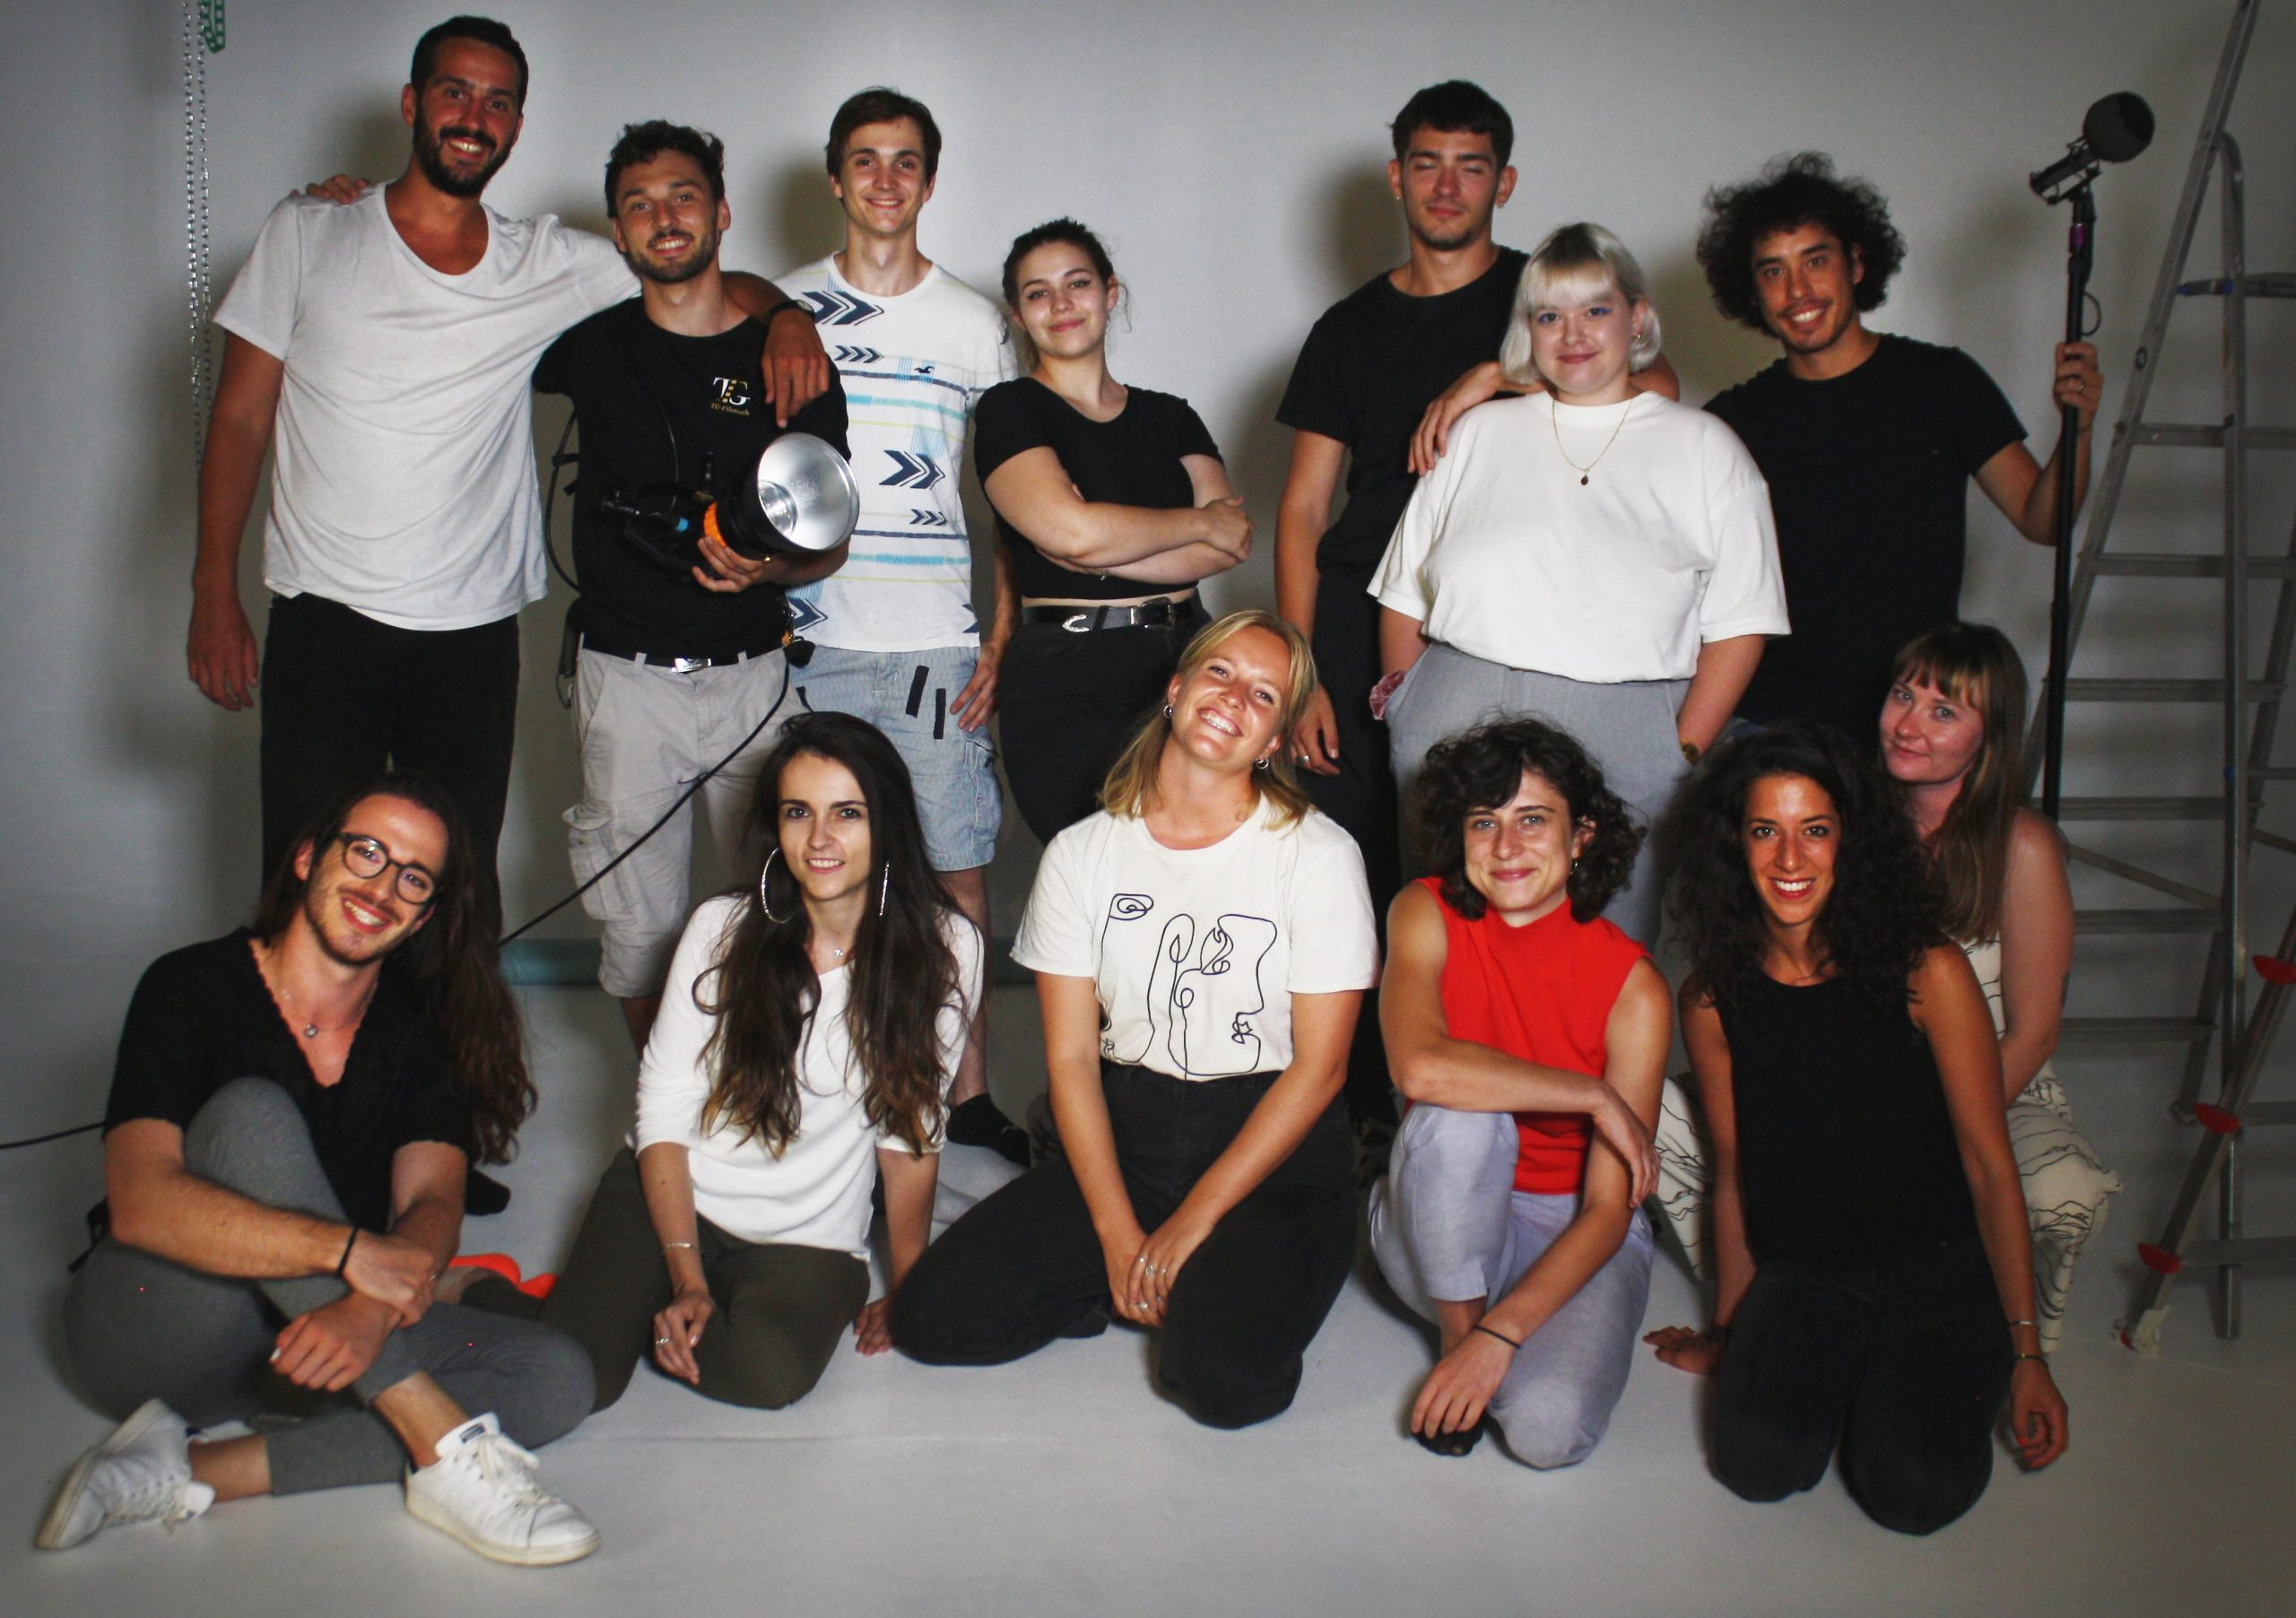 The young people who worked on the new video are posing for a group photo, smiling at the camera. Seven young people stand at the back of the shot with six in a second row in front of them, kneeling.